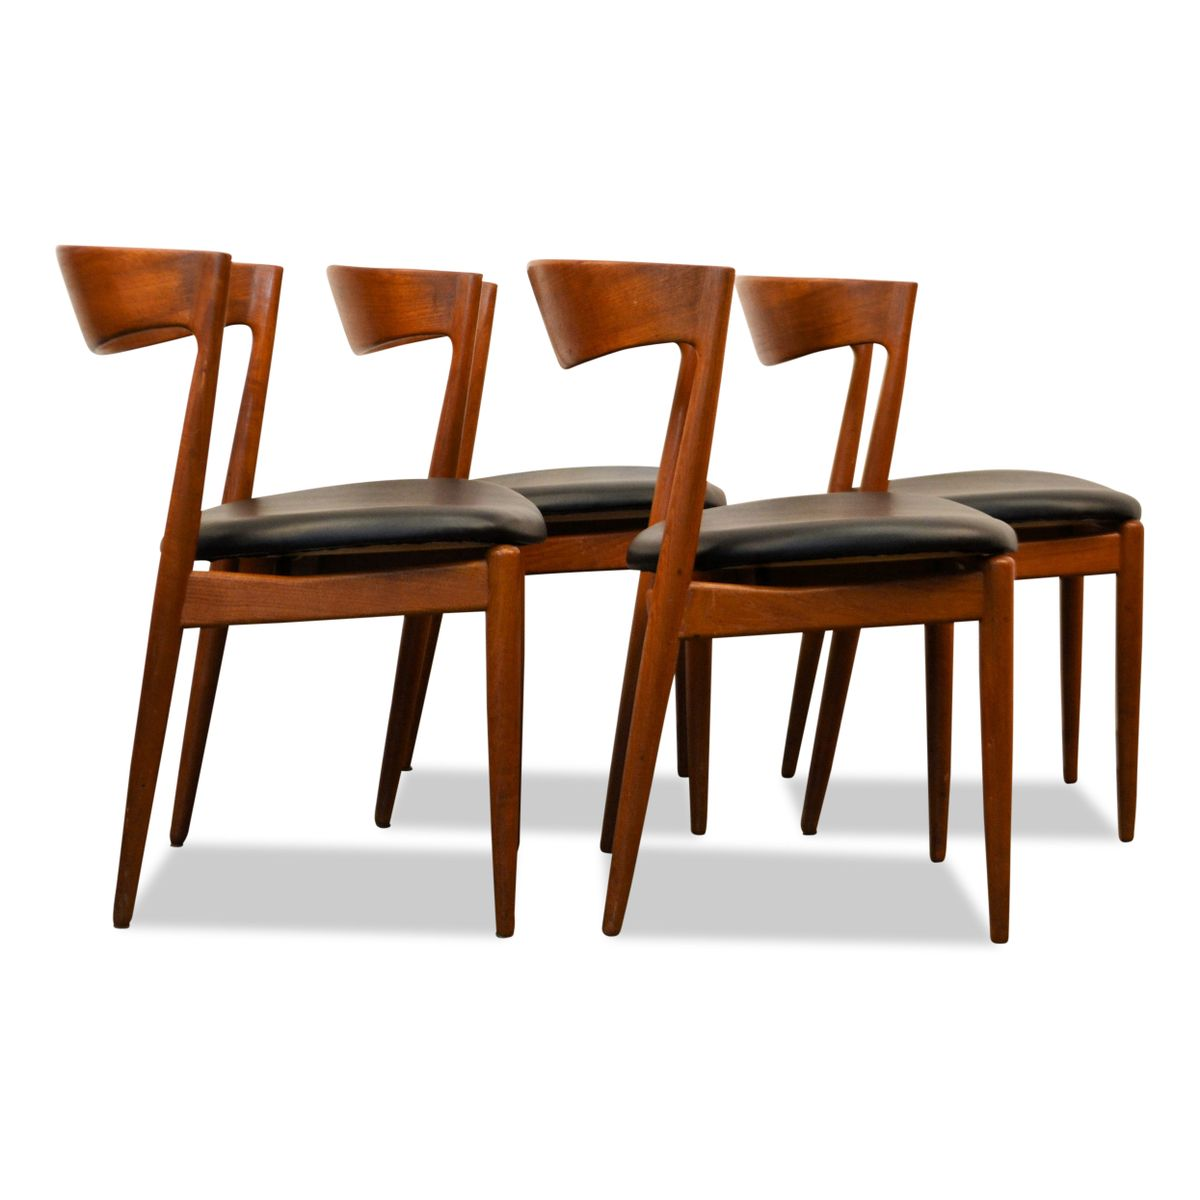 mid century dining chairs by renc gabriel set of 4 for sale